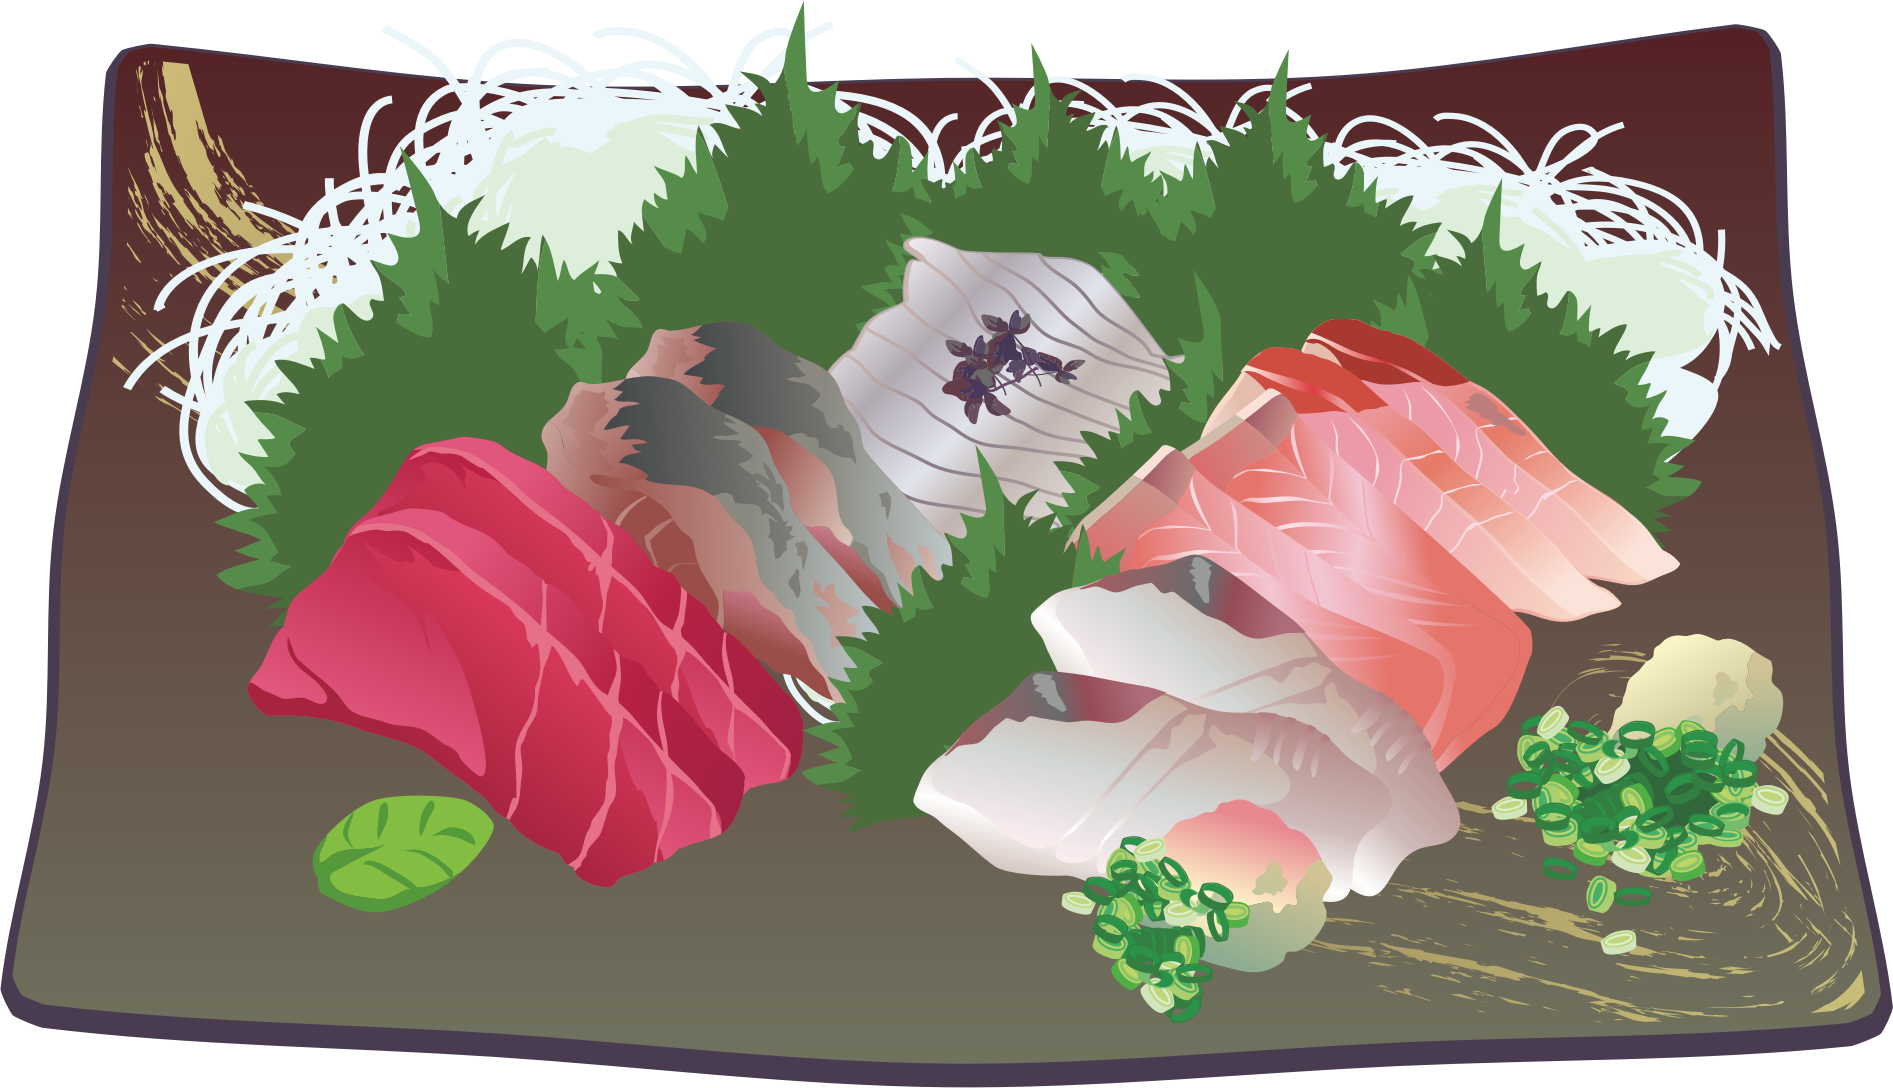 Sashimi Assortment by oksmith